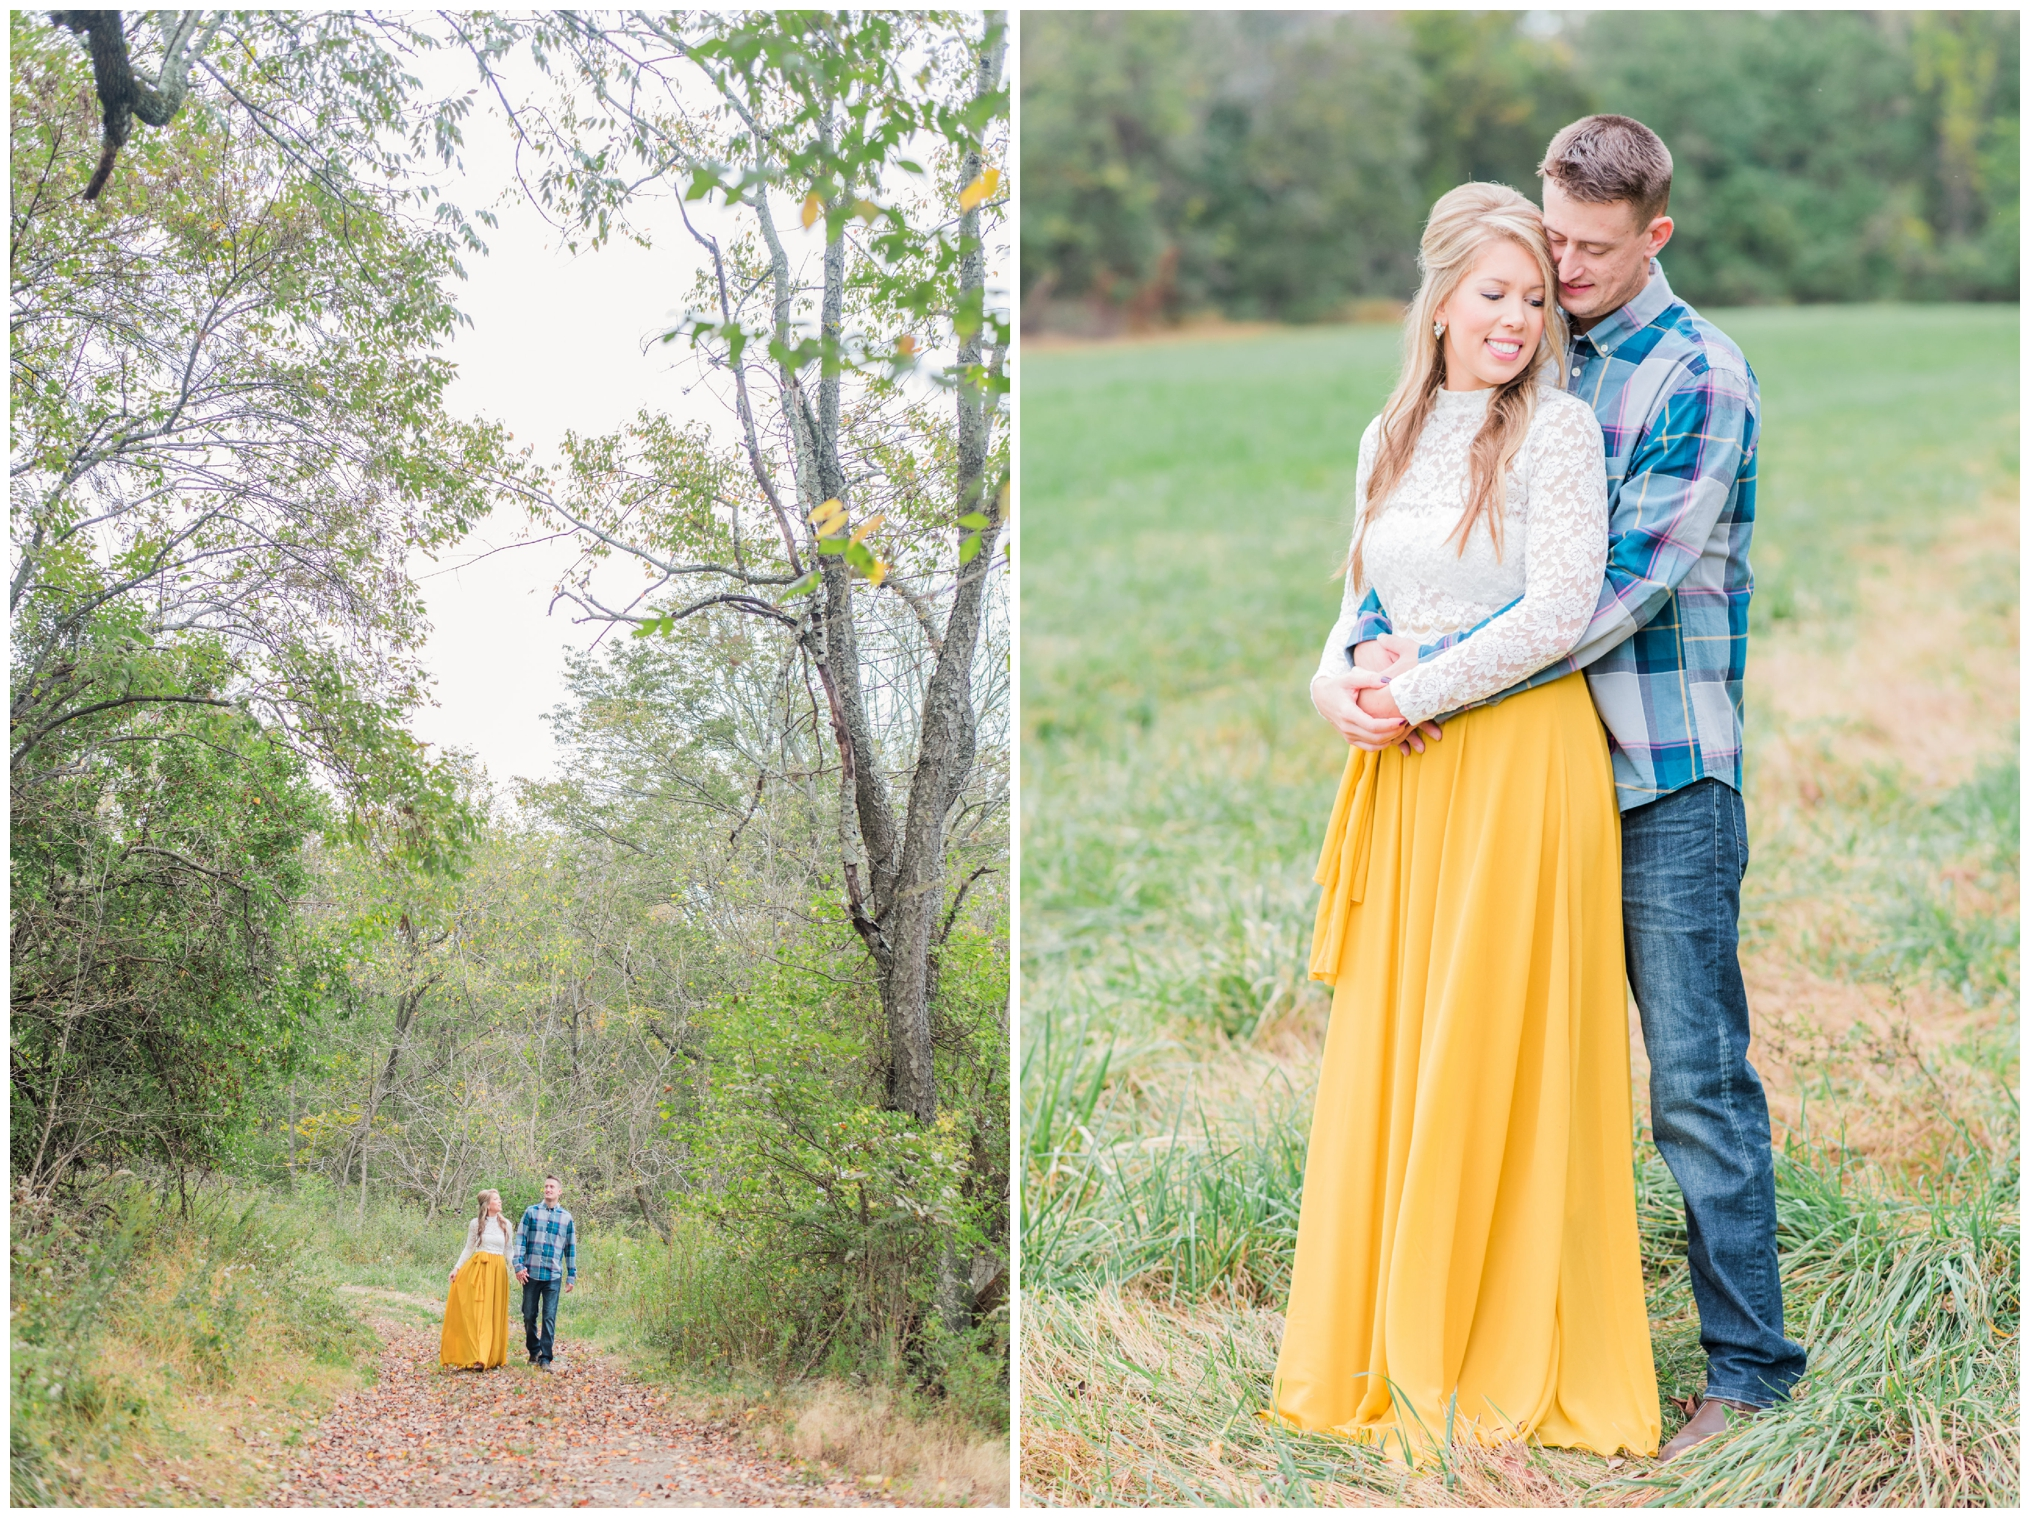 Fall Engagement Session Collegeville, PA - Krista Brackin Photography_0012.jpg